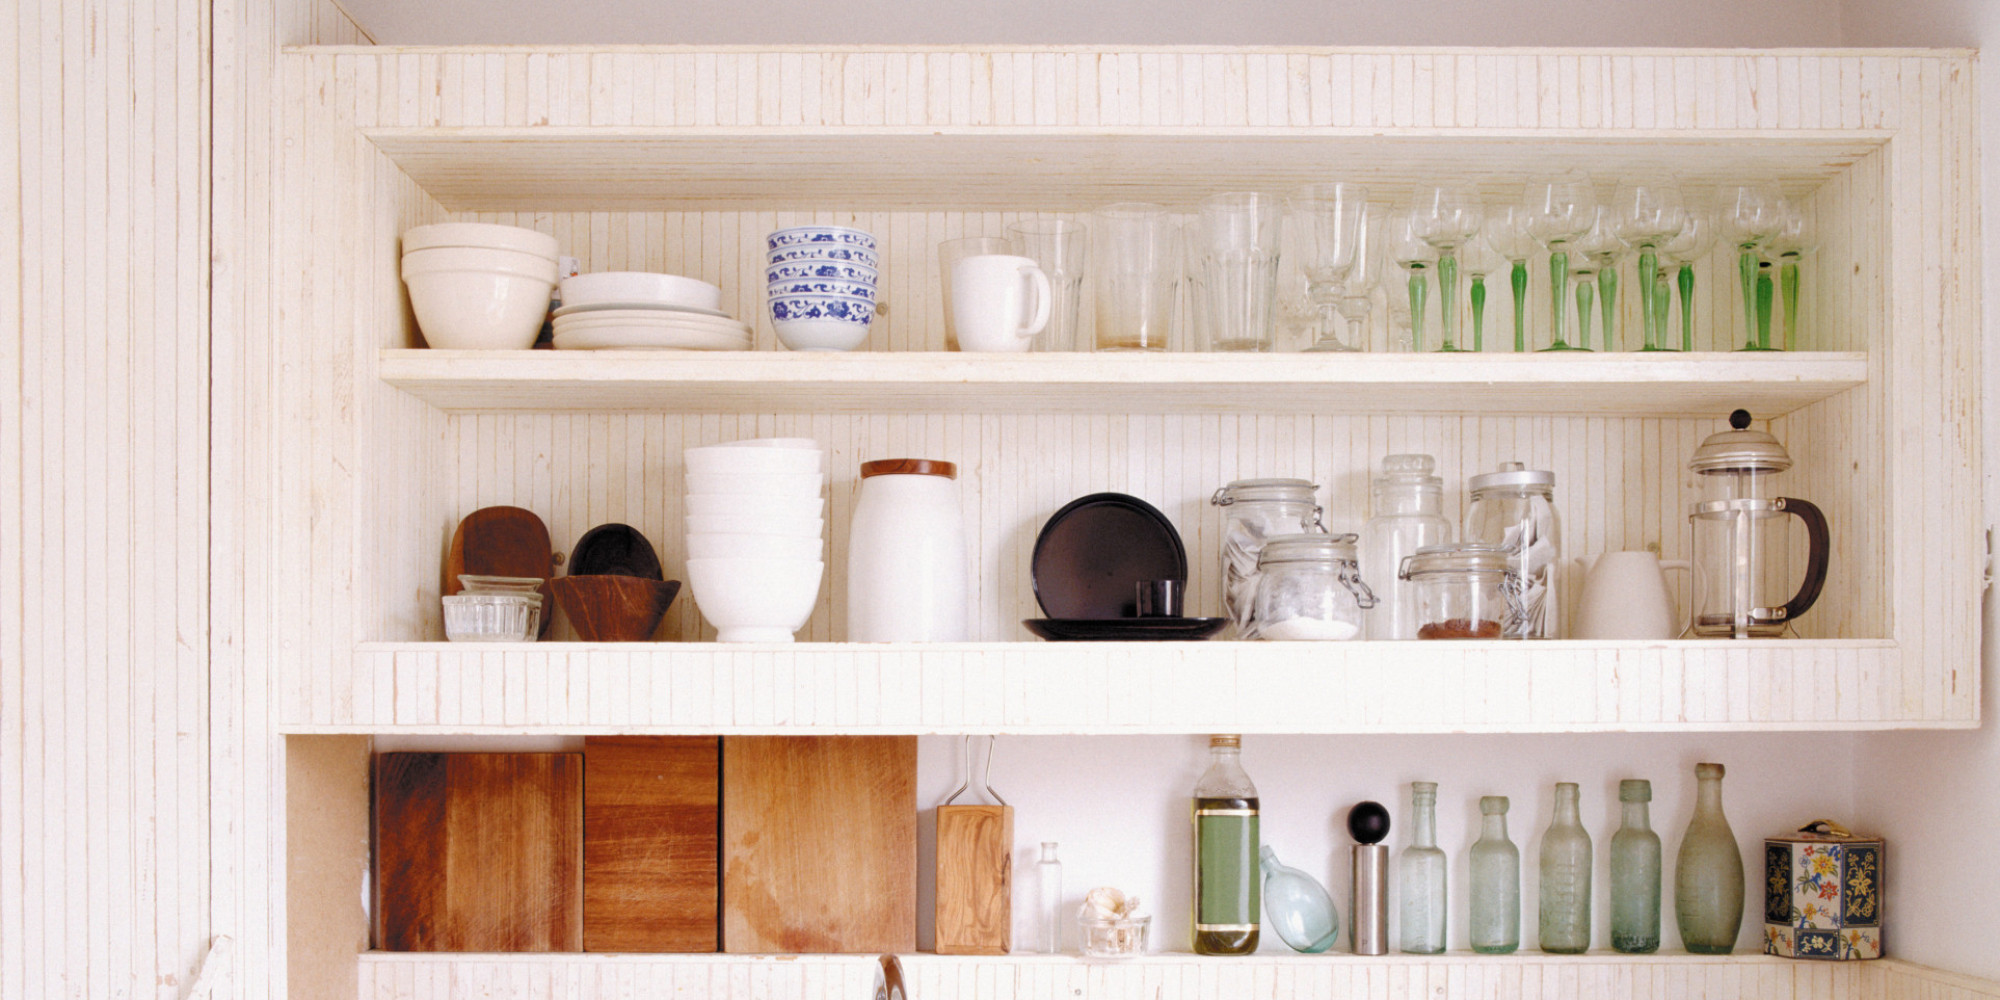 Organized Kitchen The Four Step Solution For Painlessly Organizing A Messy Messy